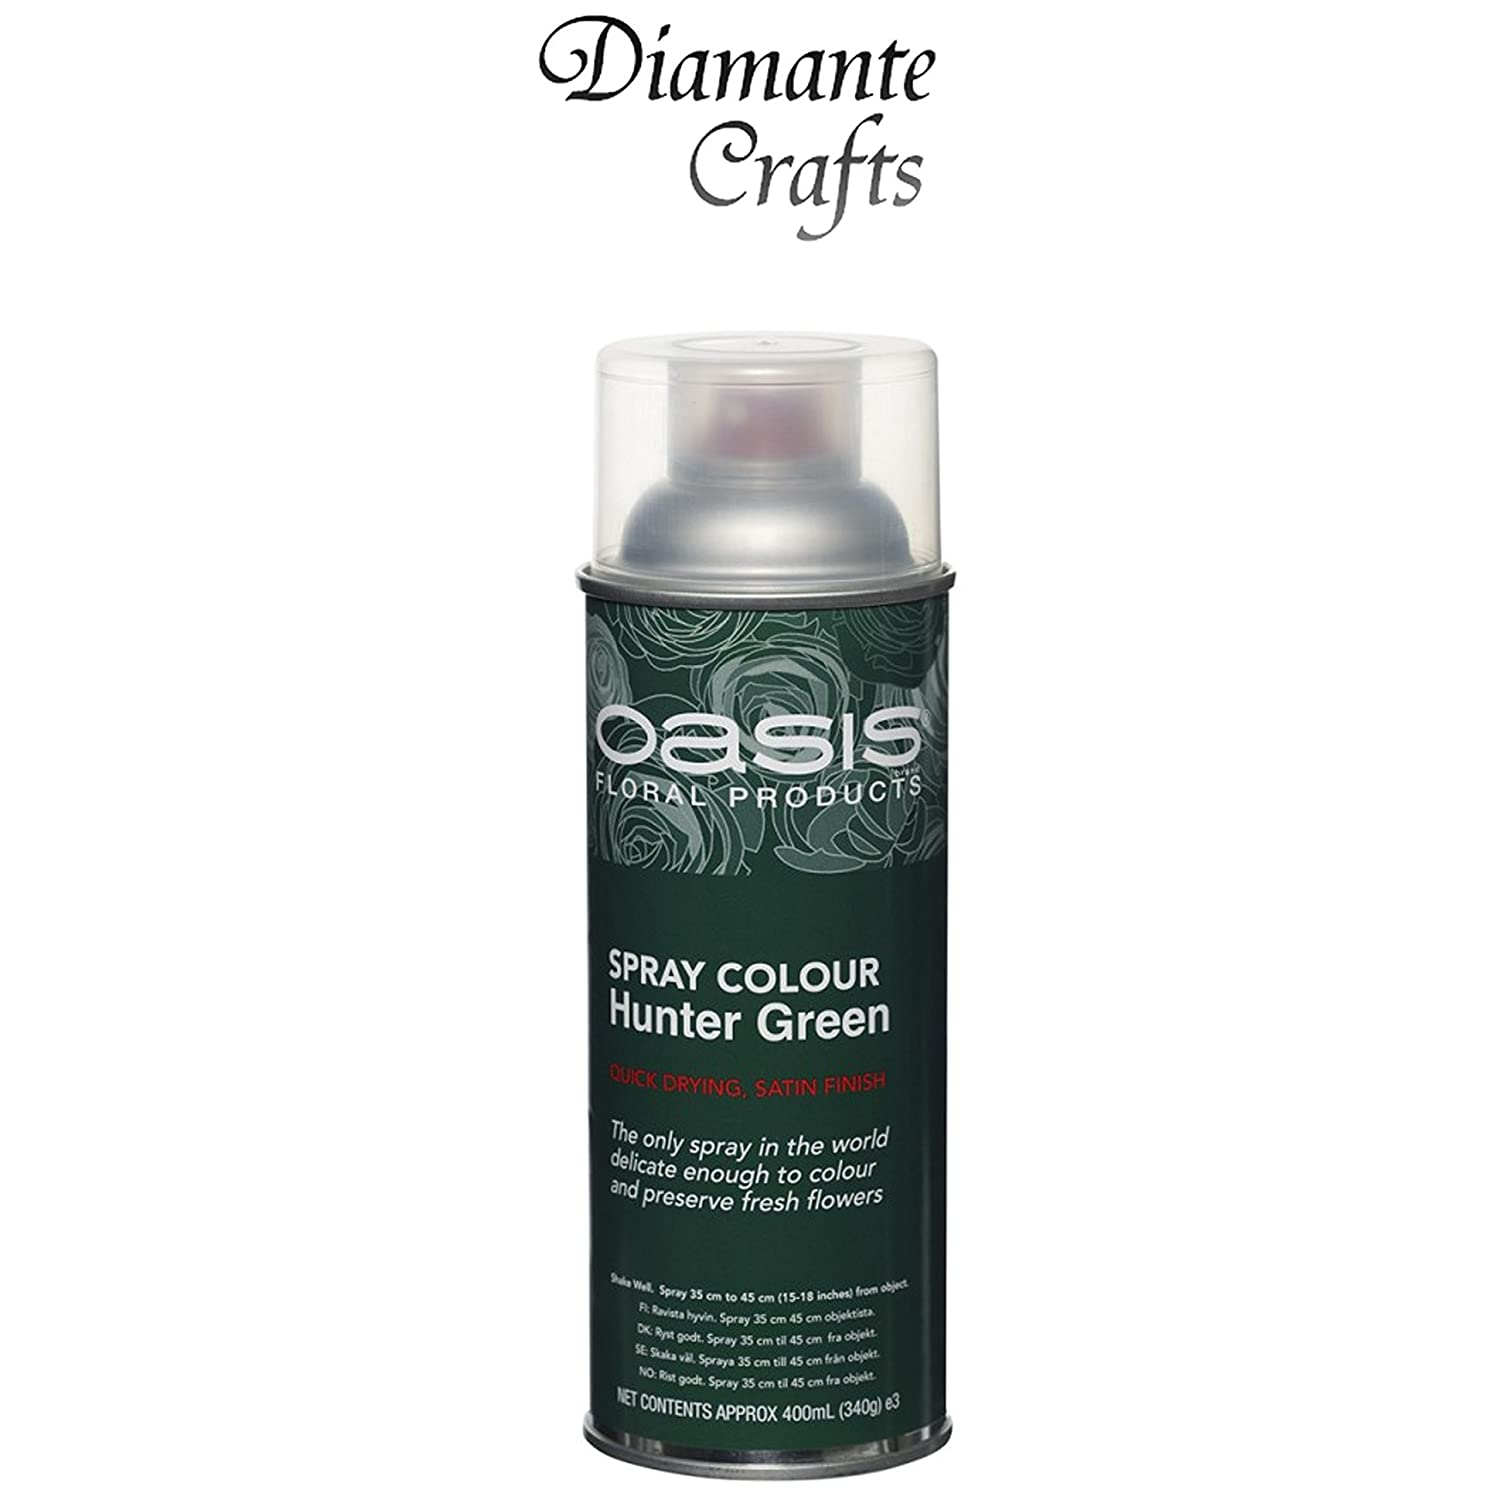 Spray Paint by Oasis 400 ml Cans Fresh Flowers & Crafts Florist - 42 Colours (Flat Black) Diamante Crafts